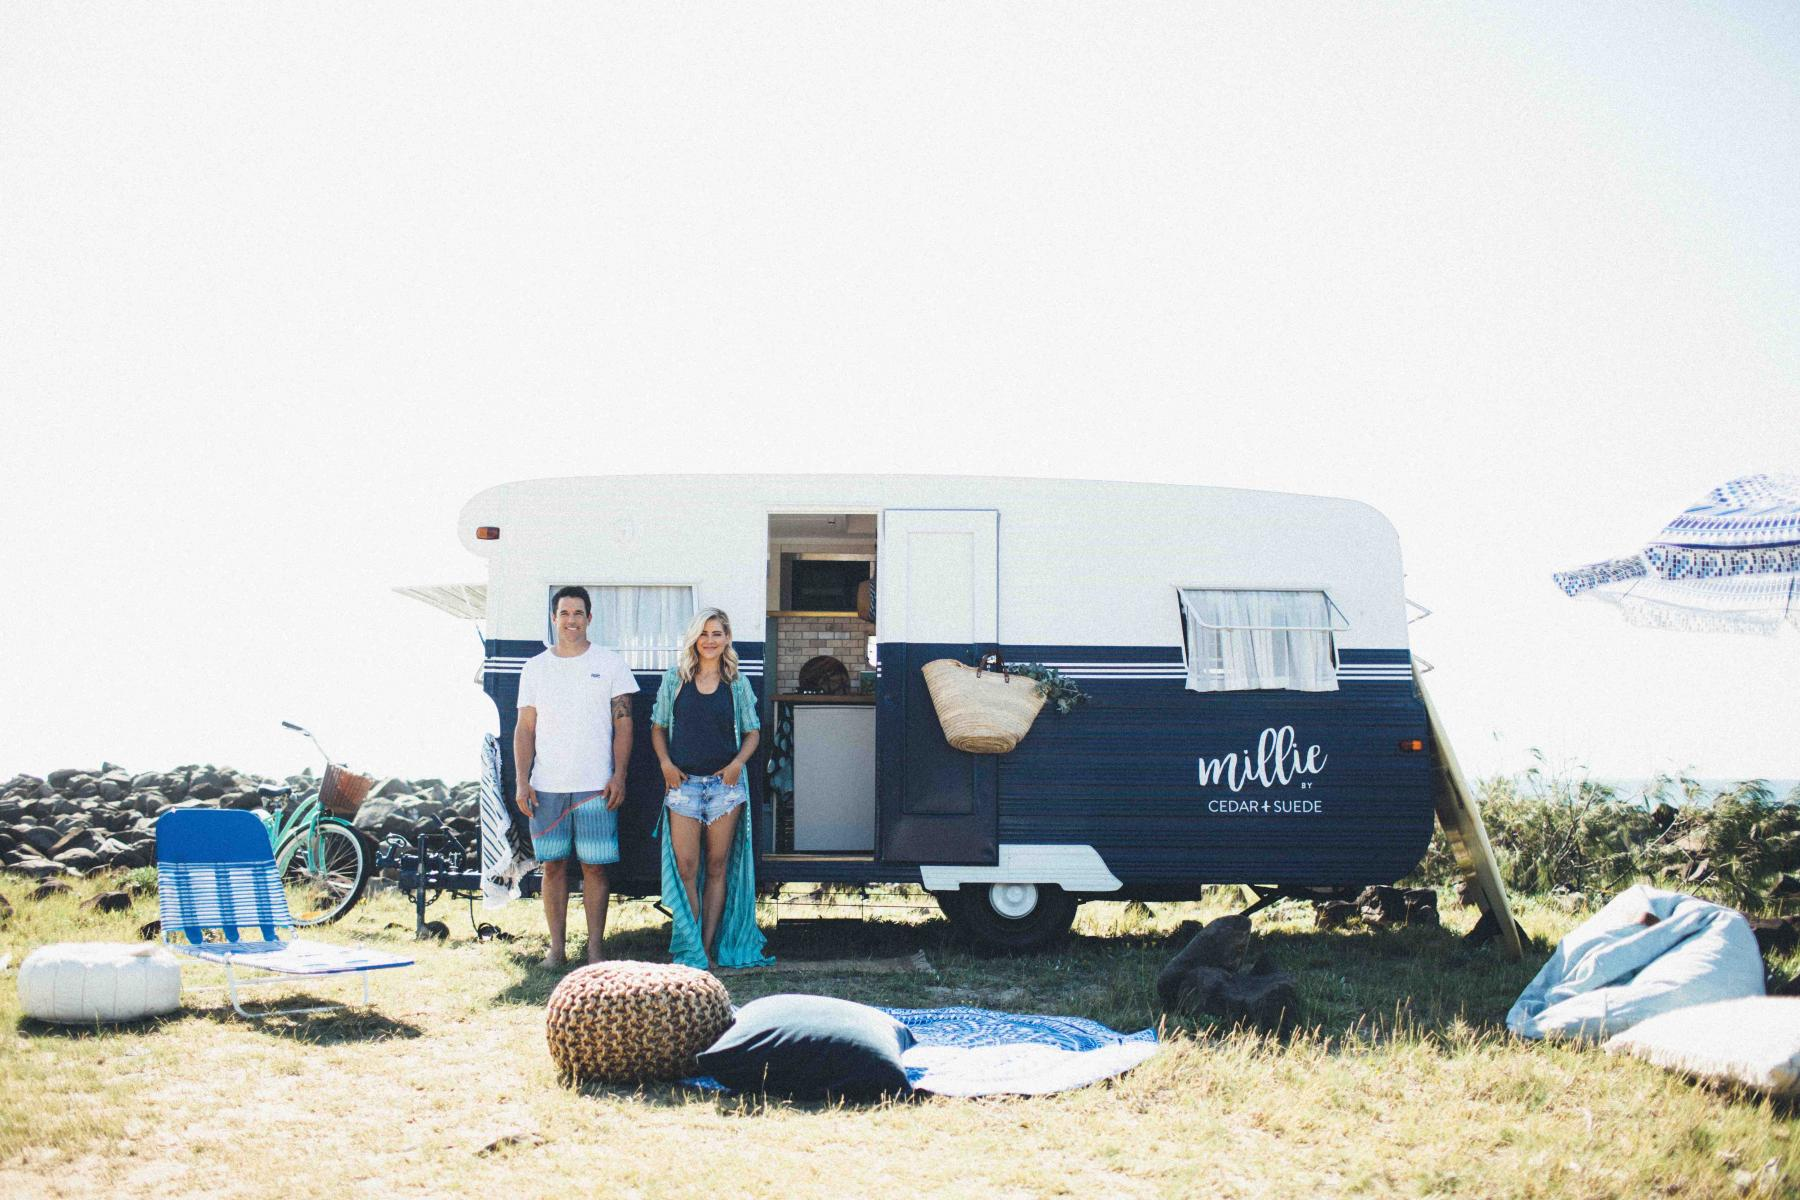 <strong>A summer holiday home on wheels</strong>